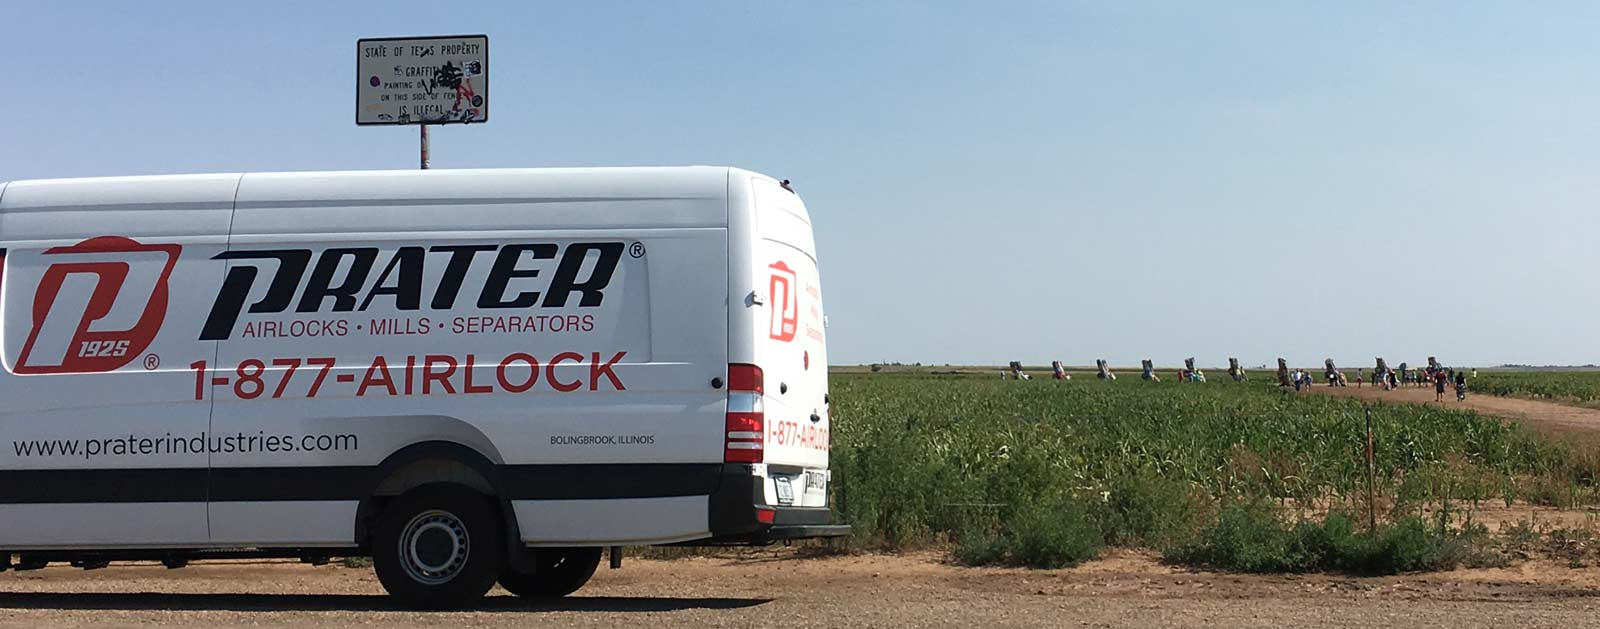 Prater Airlock Express Arrives in Texas